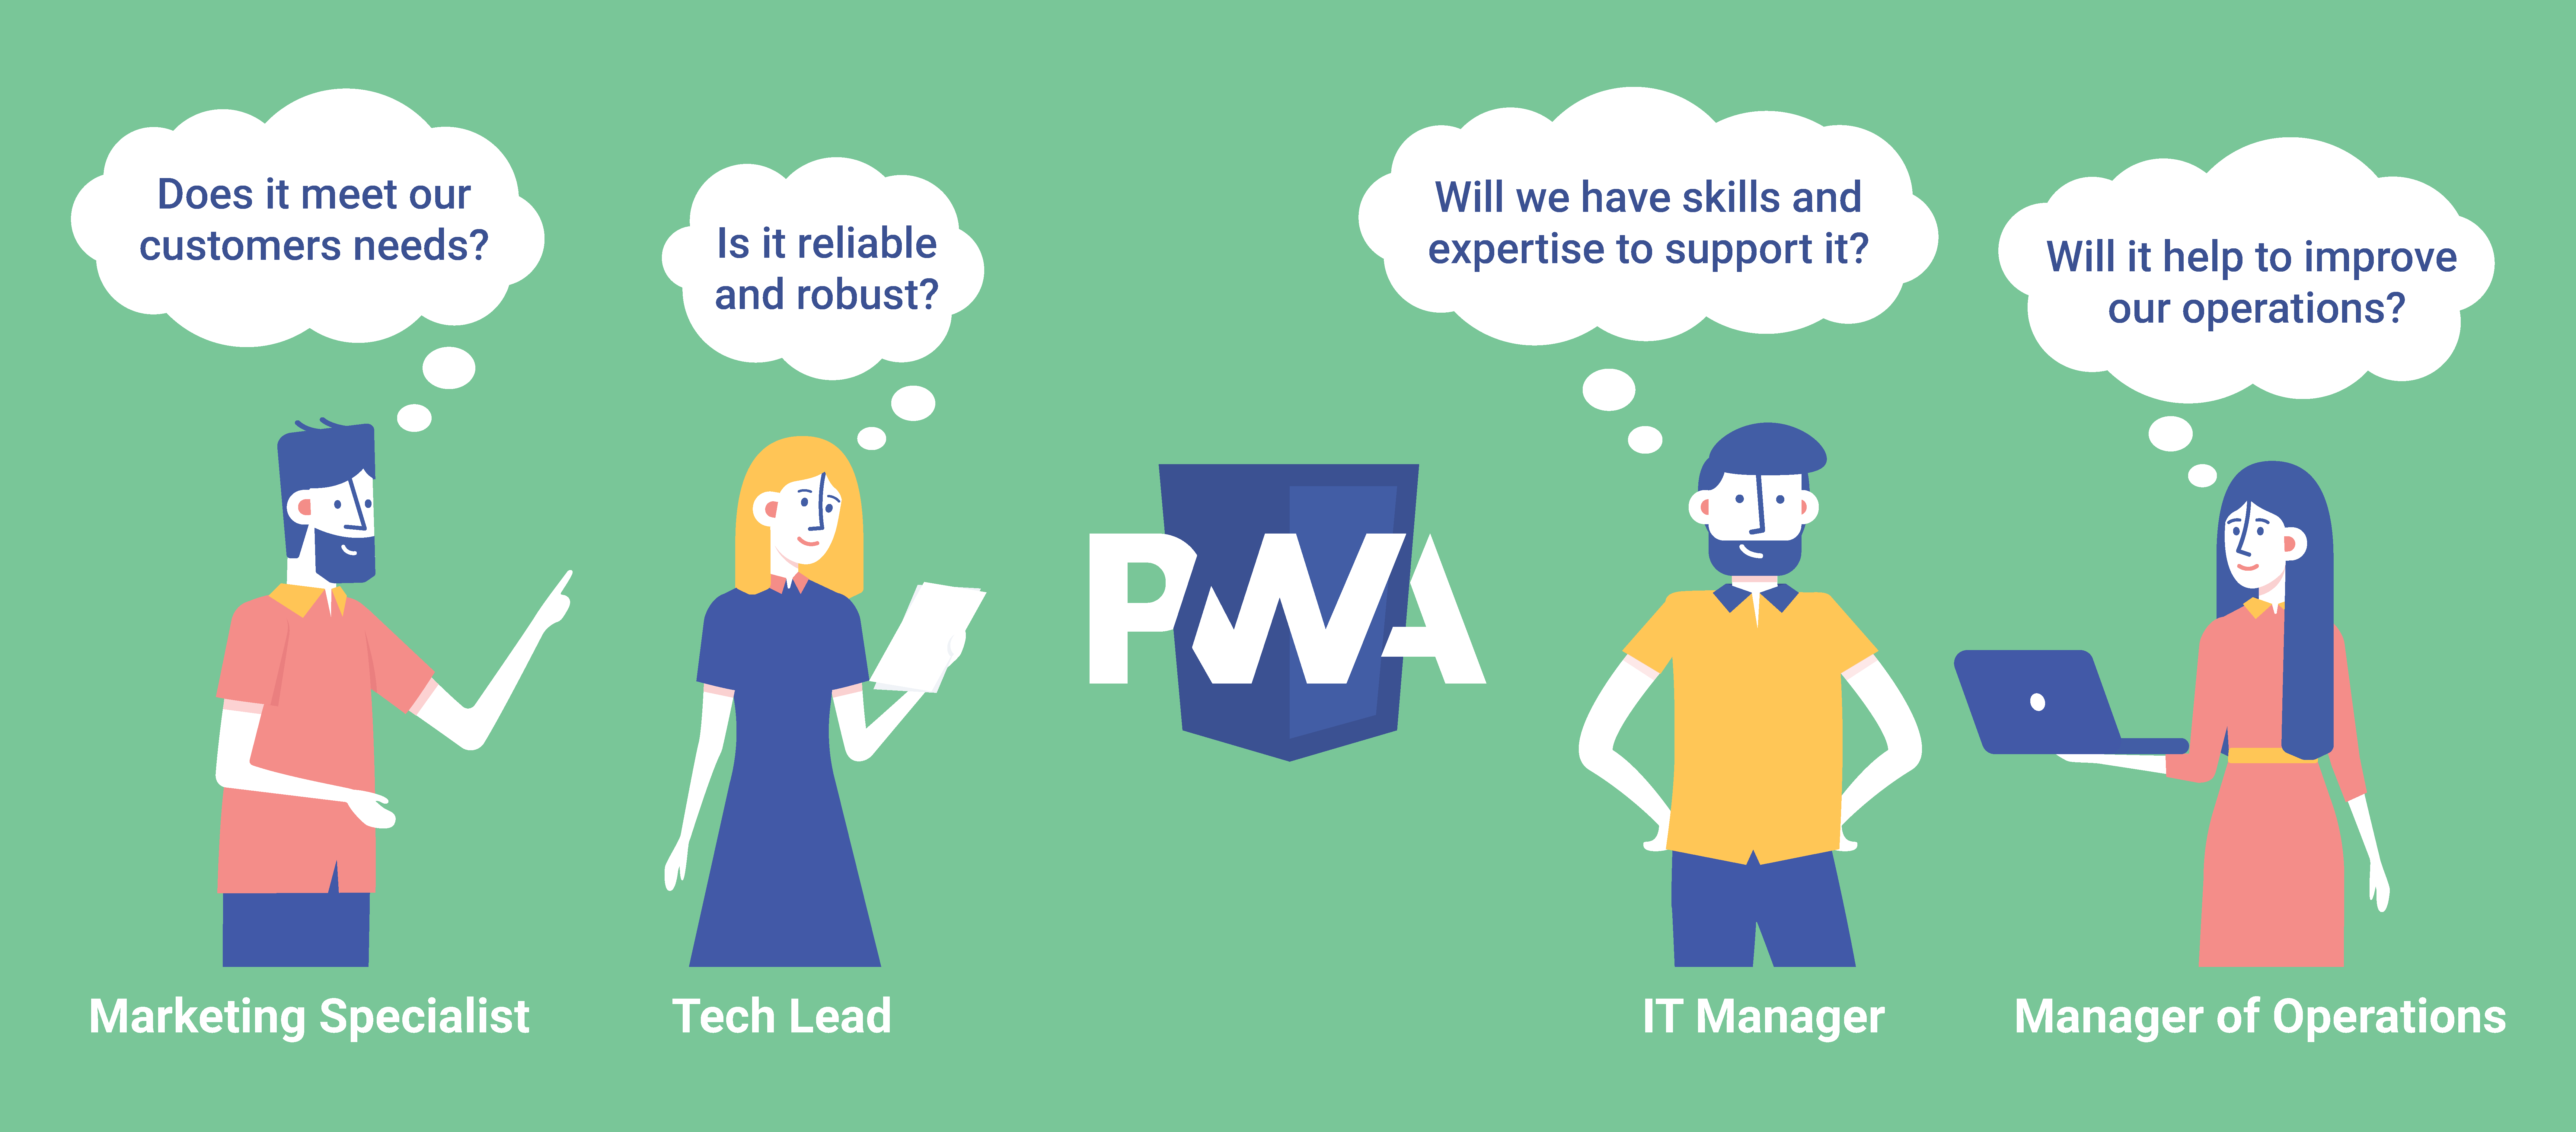 PWA for business